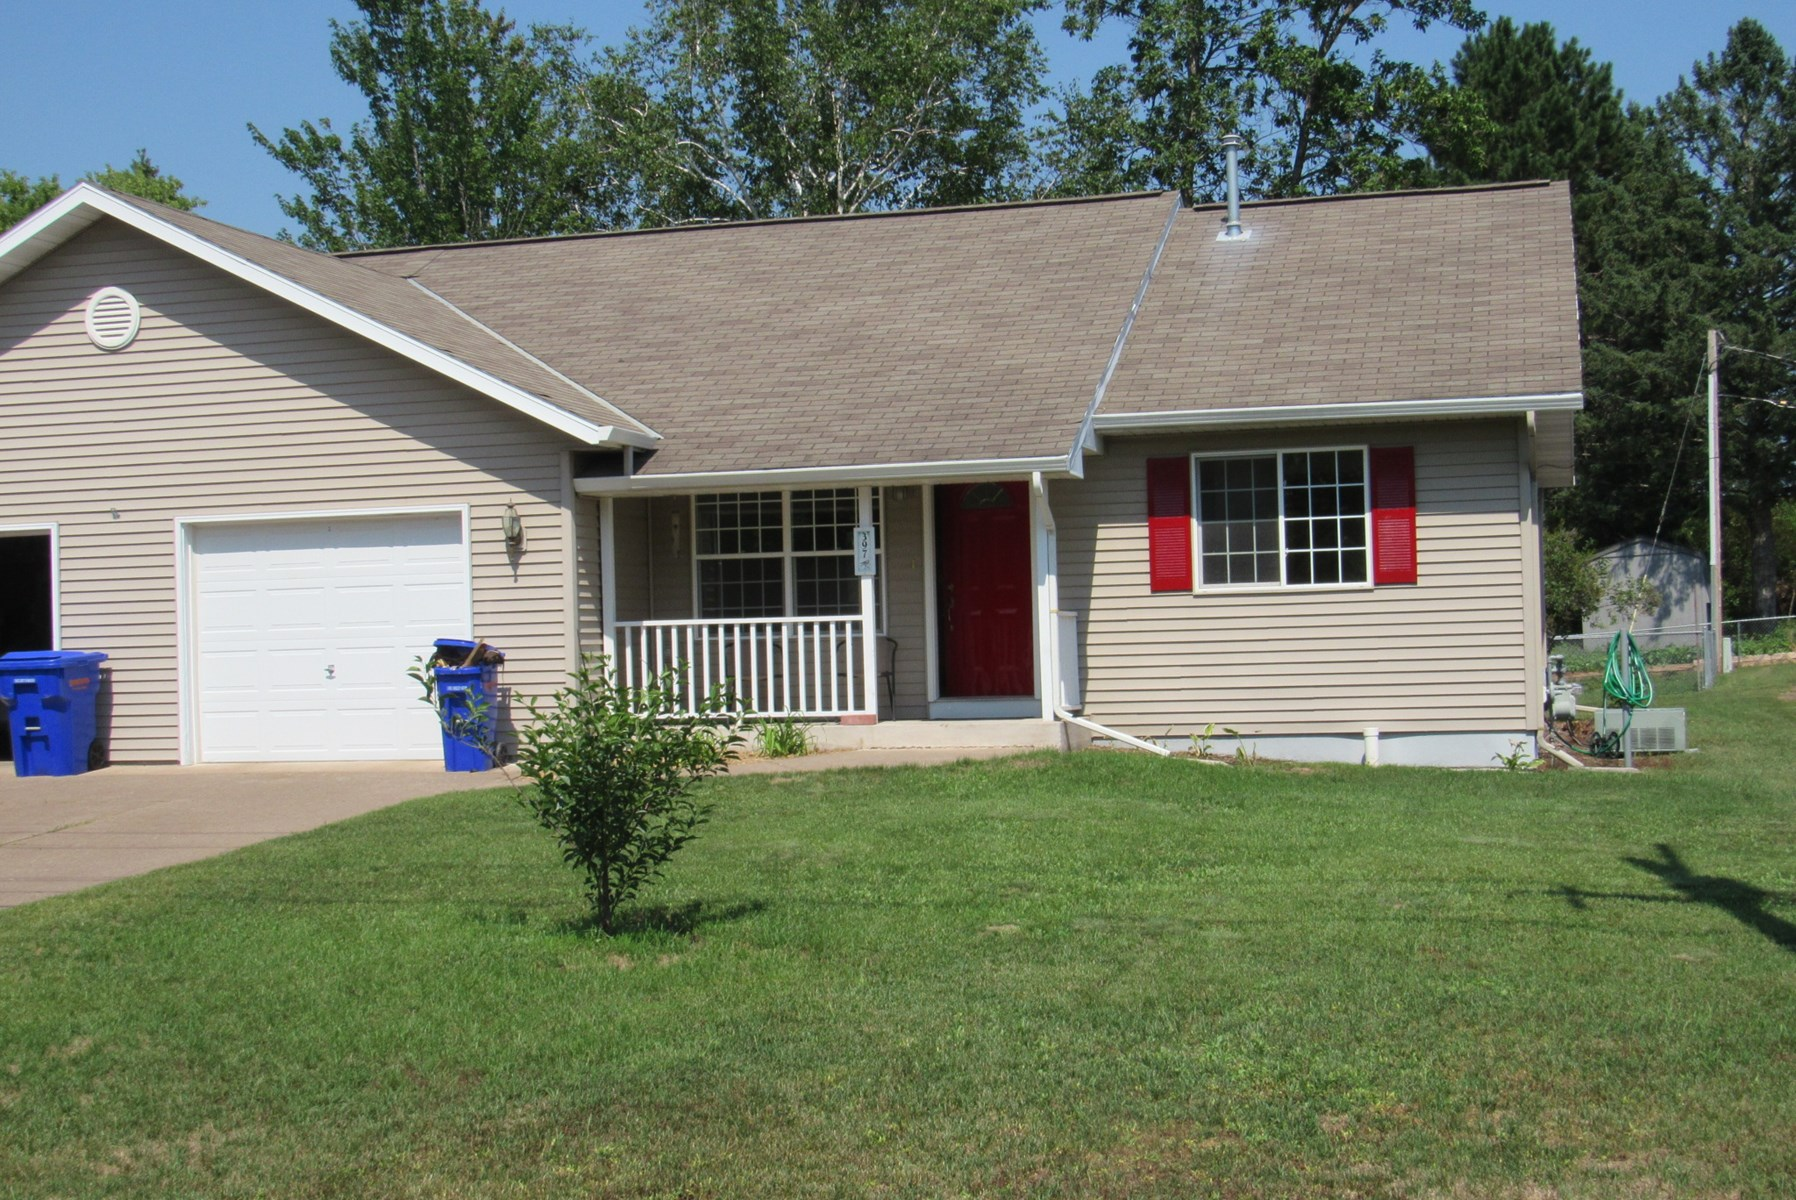 Move-In Ready Duplex Side For Sale in Moose Lake, MN